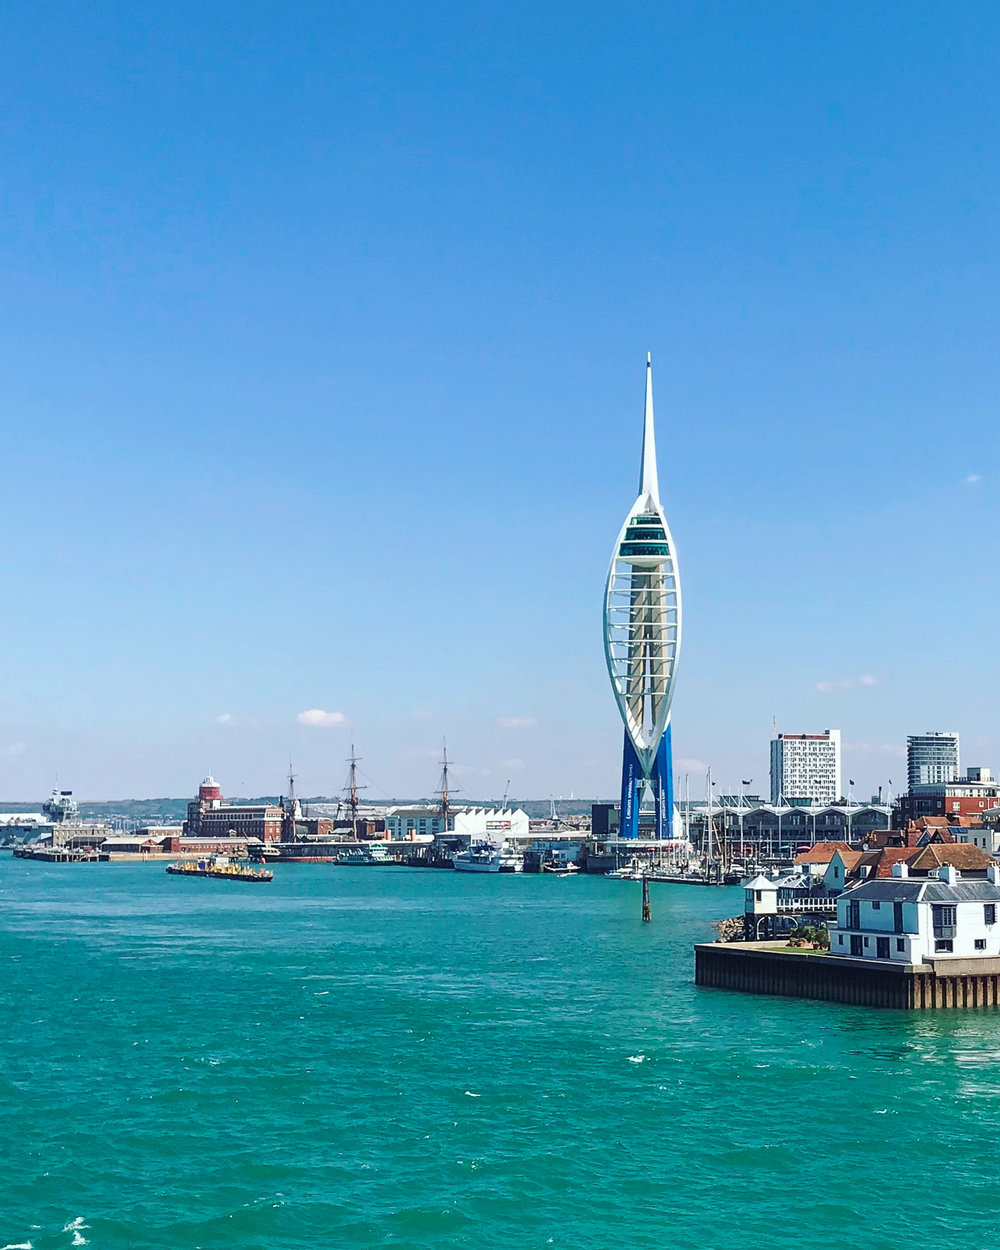 Wightlink Ferries departing Portsmouth for Isle of Wight